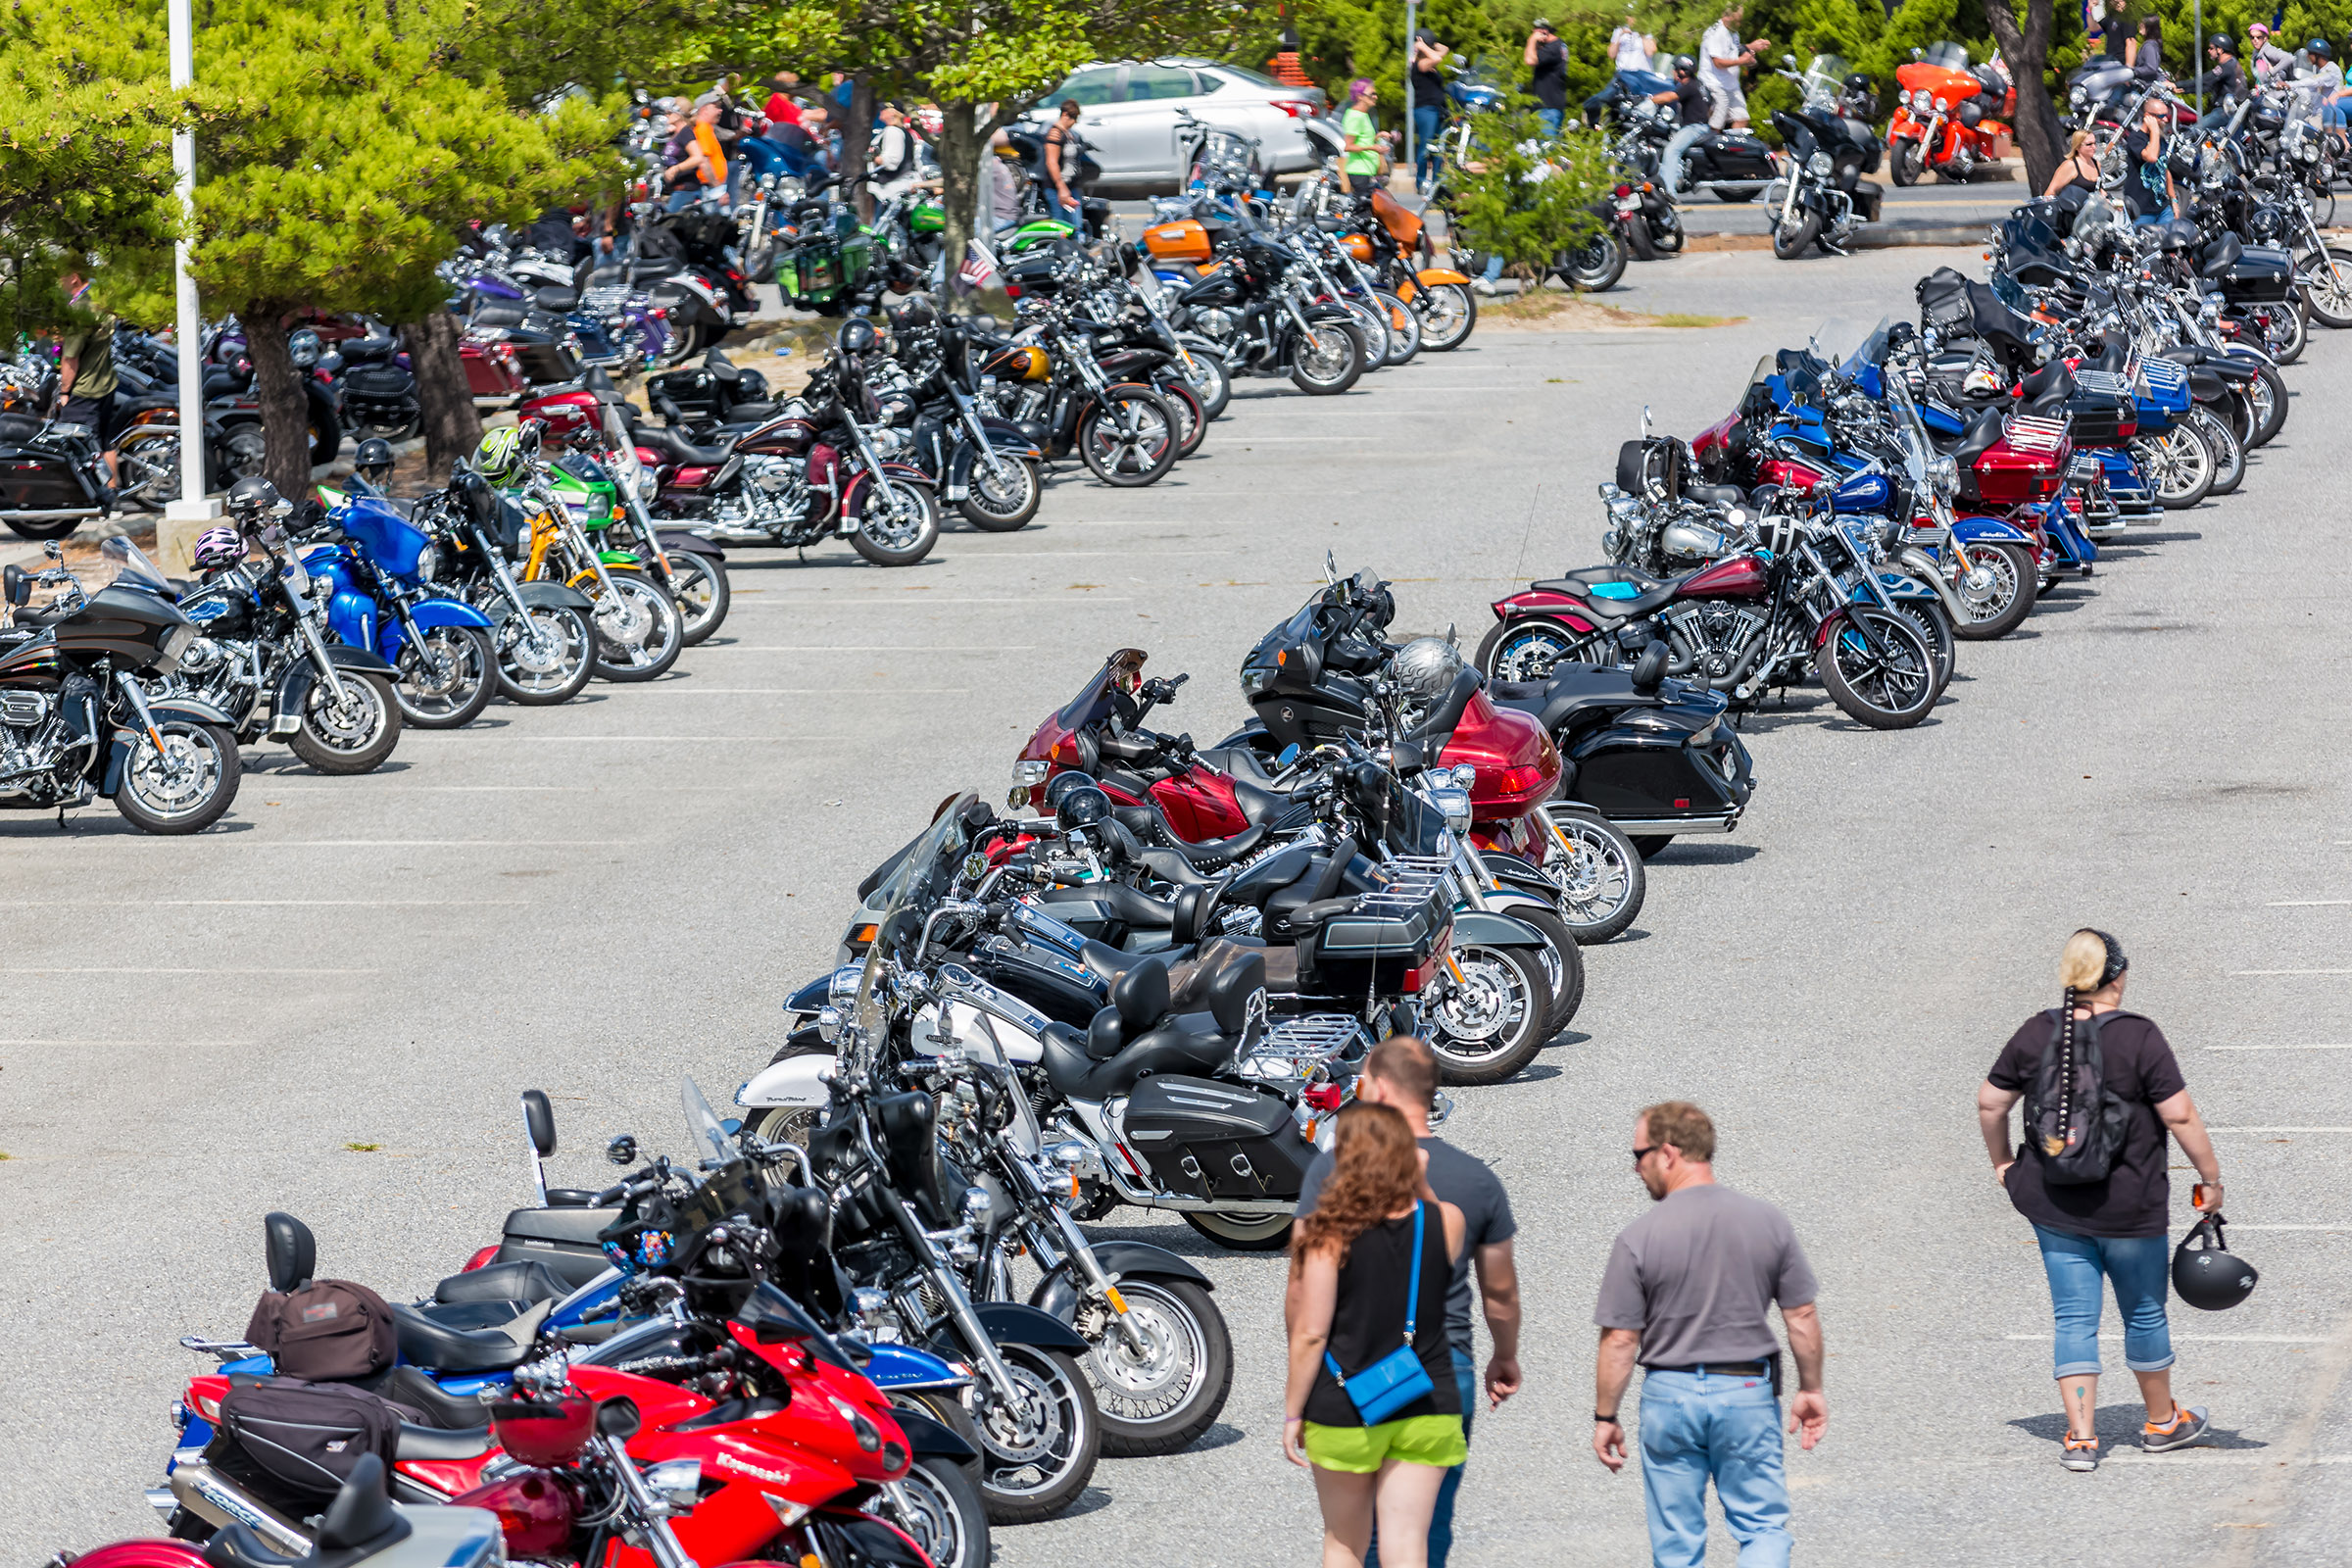 Two-Week BikeFest Concept Meets Concerns From OC Elected, Public Safety Officials